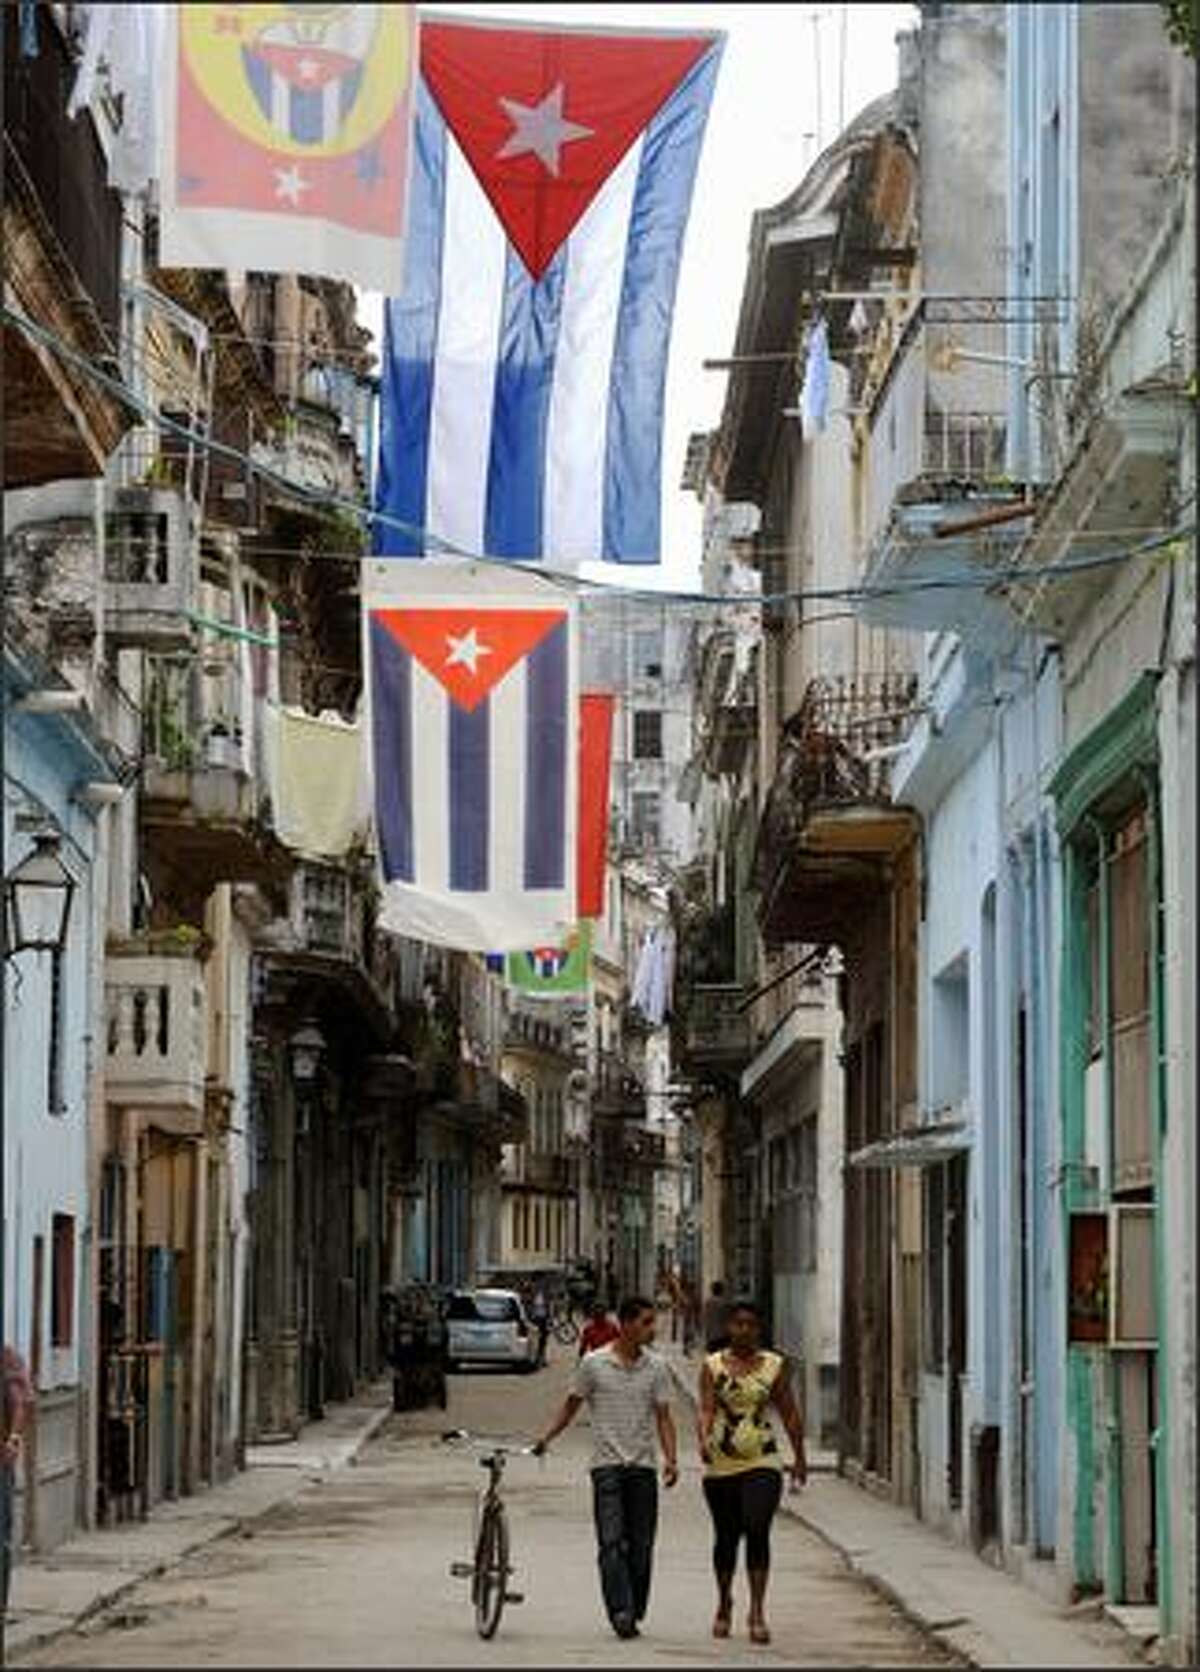 A couple strolls along a street decorated with Cuban flags in downtown Havana on Sunday. Next January 1st, 2009 marks the 50th anniversary of the Cuban Revolution, the date in which dictator Fulgencio Batista was forced to flee from Cuba by plane.